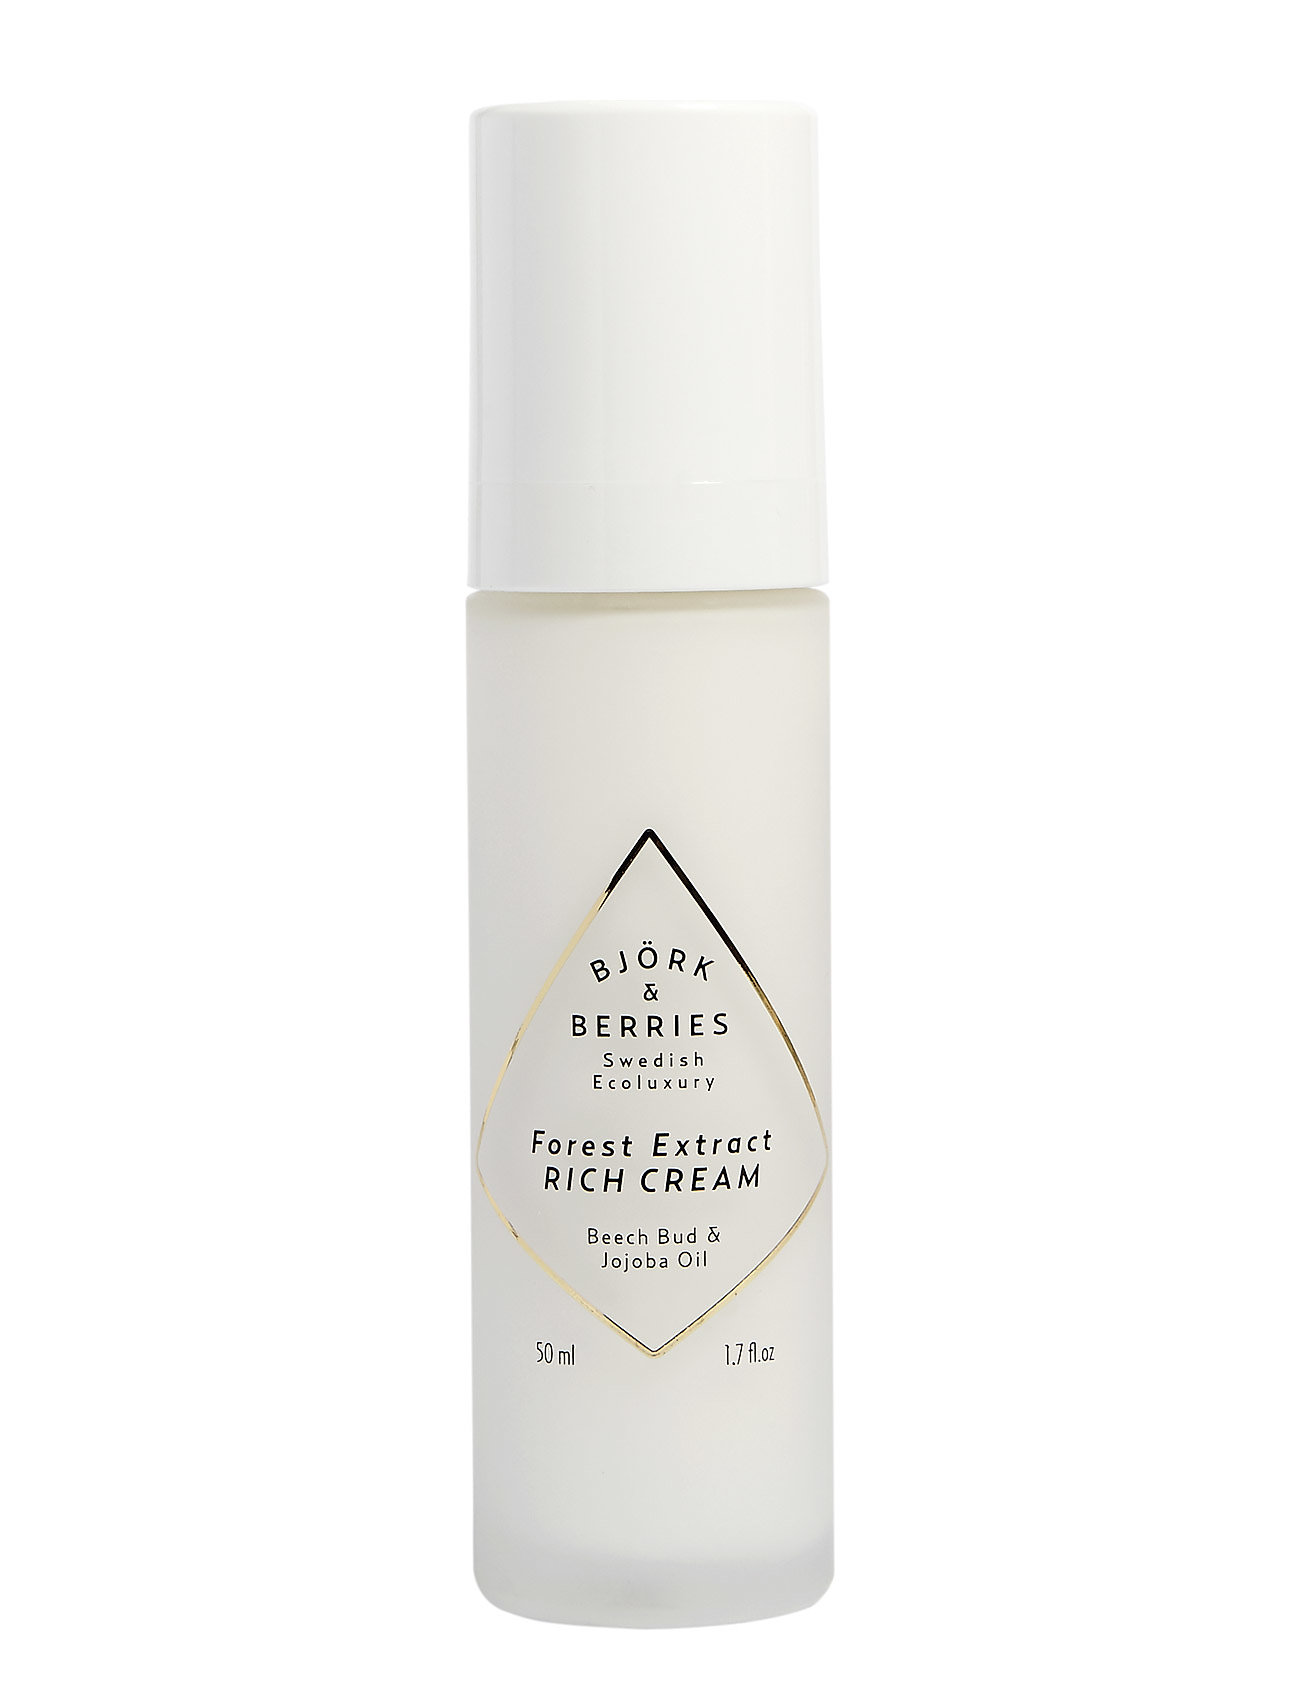 Björk & Berries Forest Extract Rich Cream - CLEAR